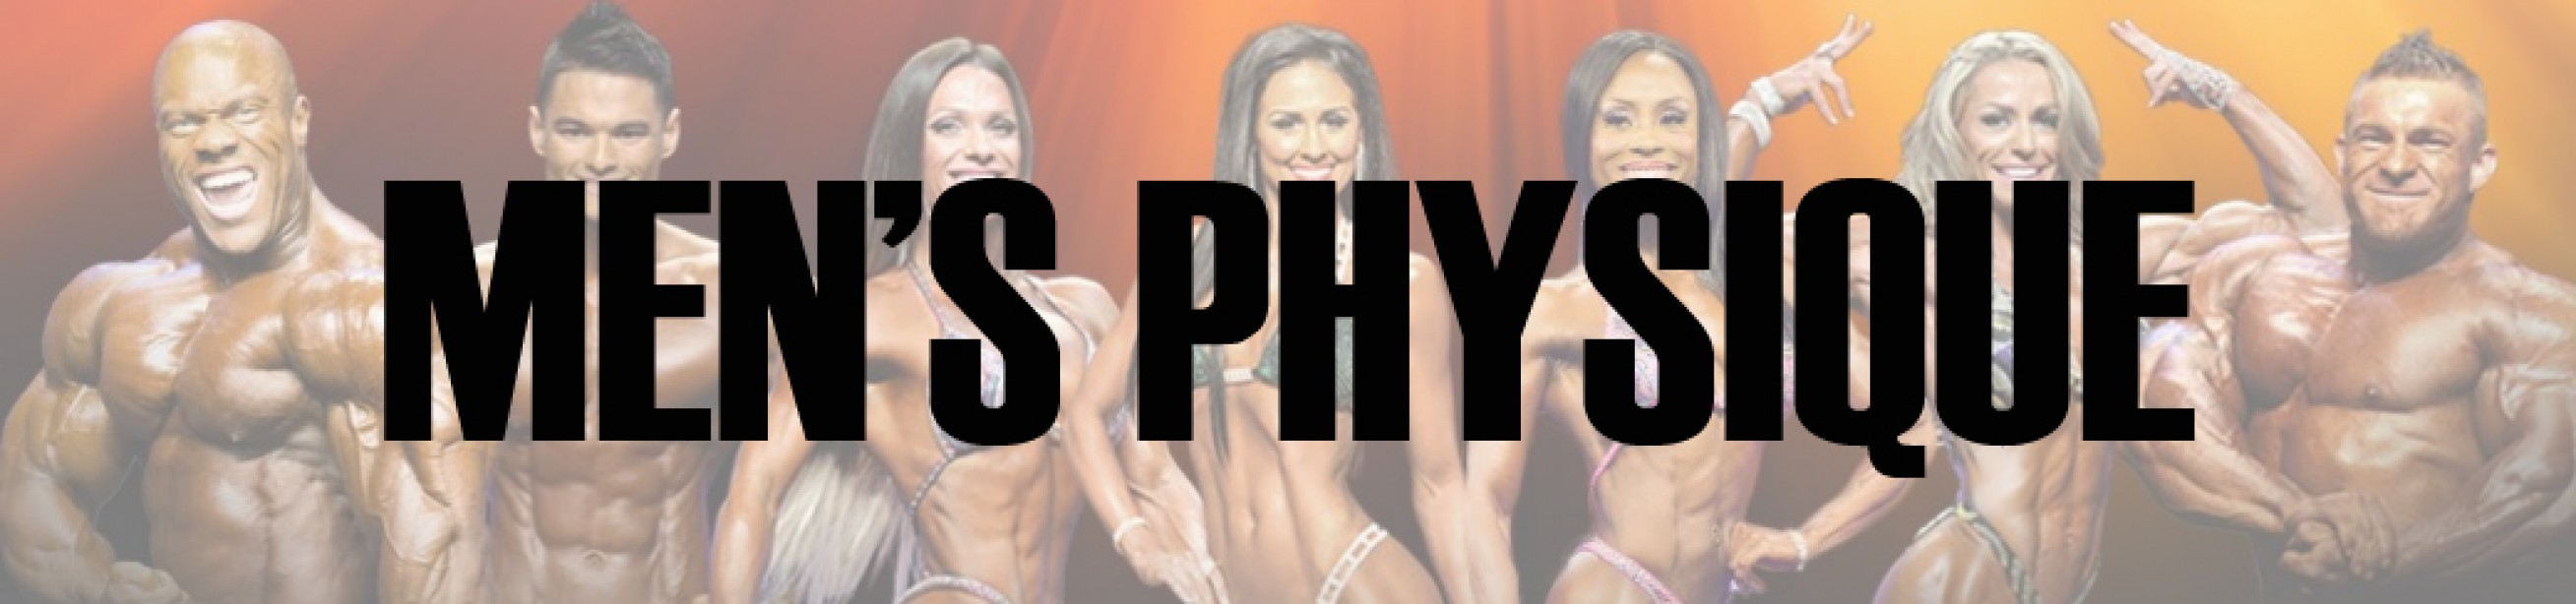 2016 Olympia Men's Physique Call Out Report